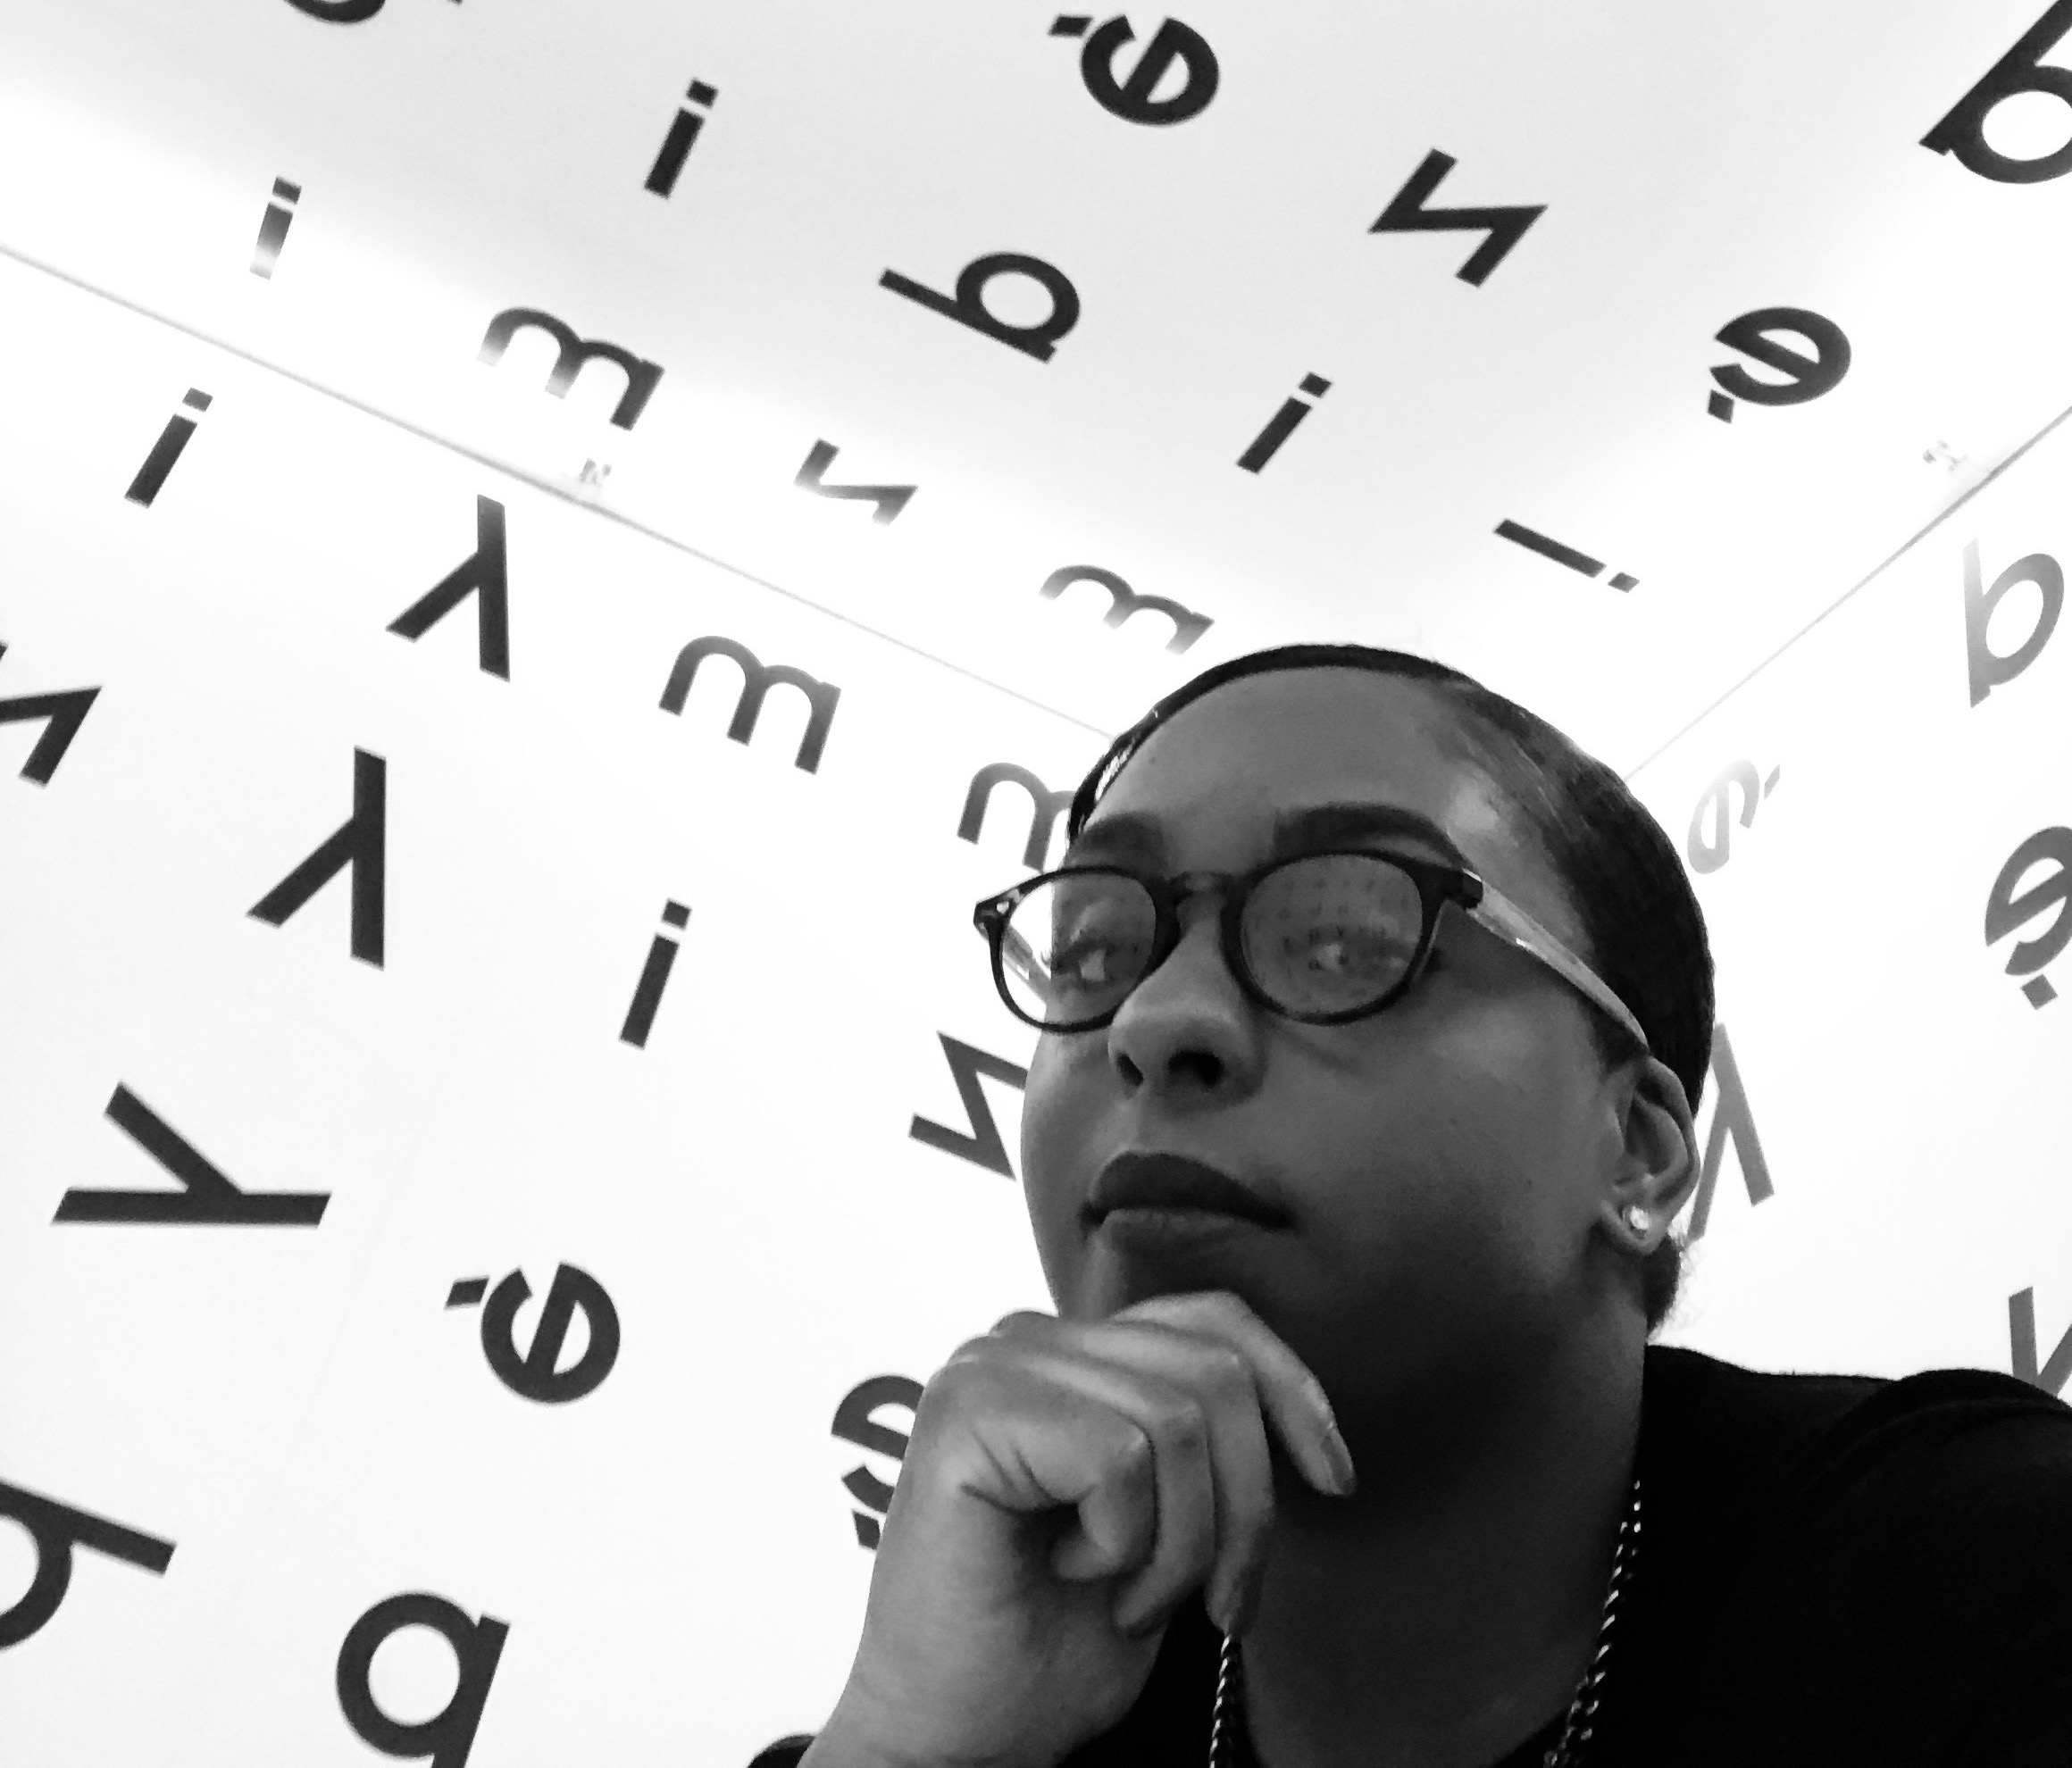 Naya Moss in black and white picture at the Museum of Contemporary Art in Krakow MOCAK.